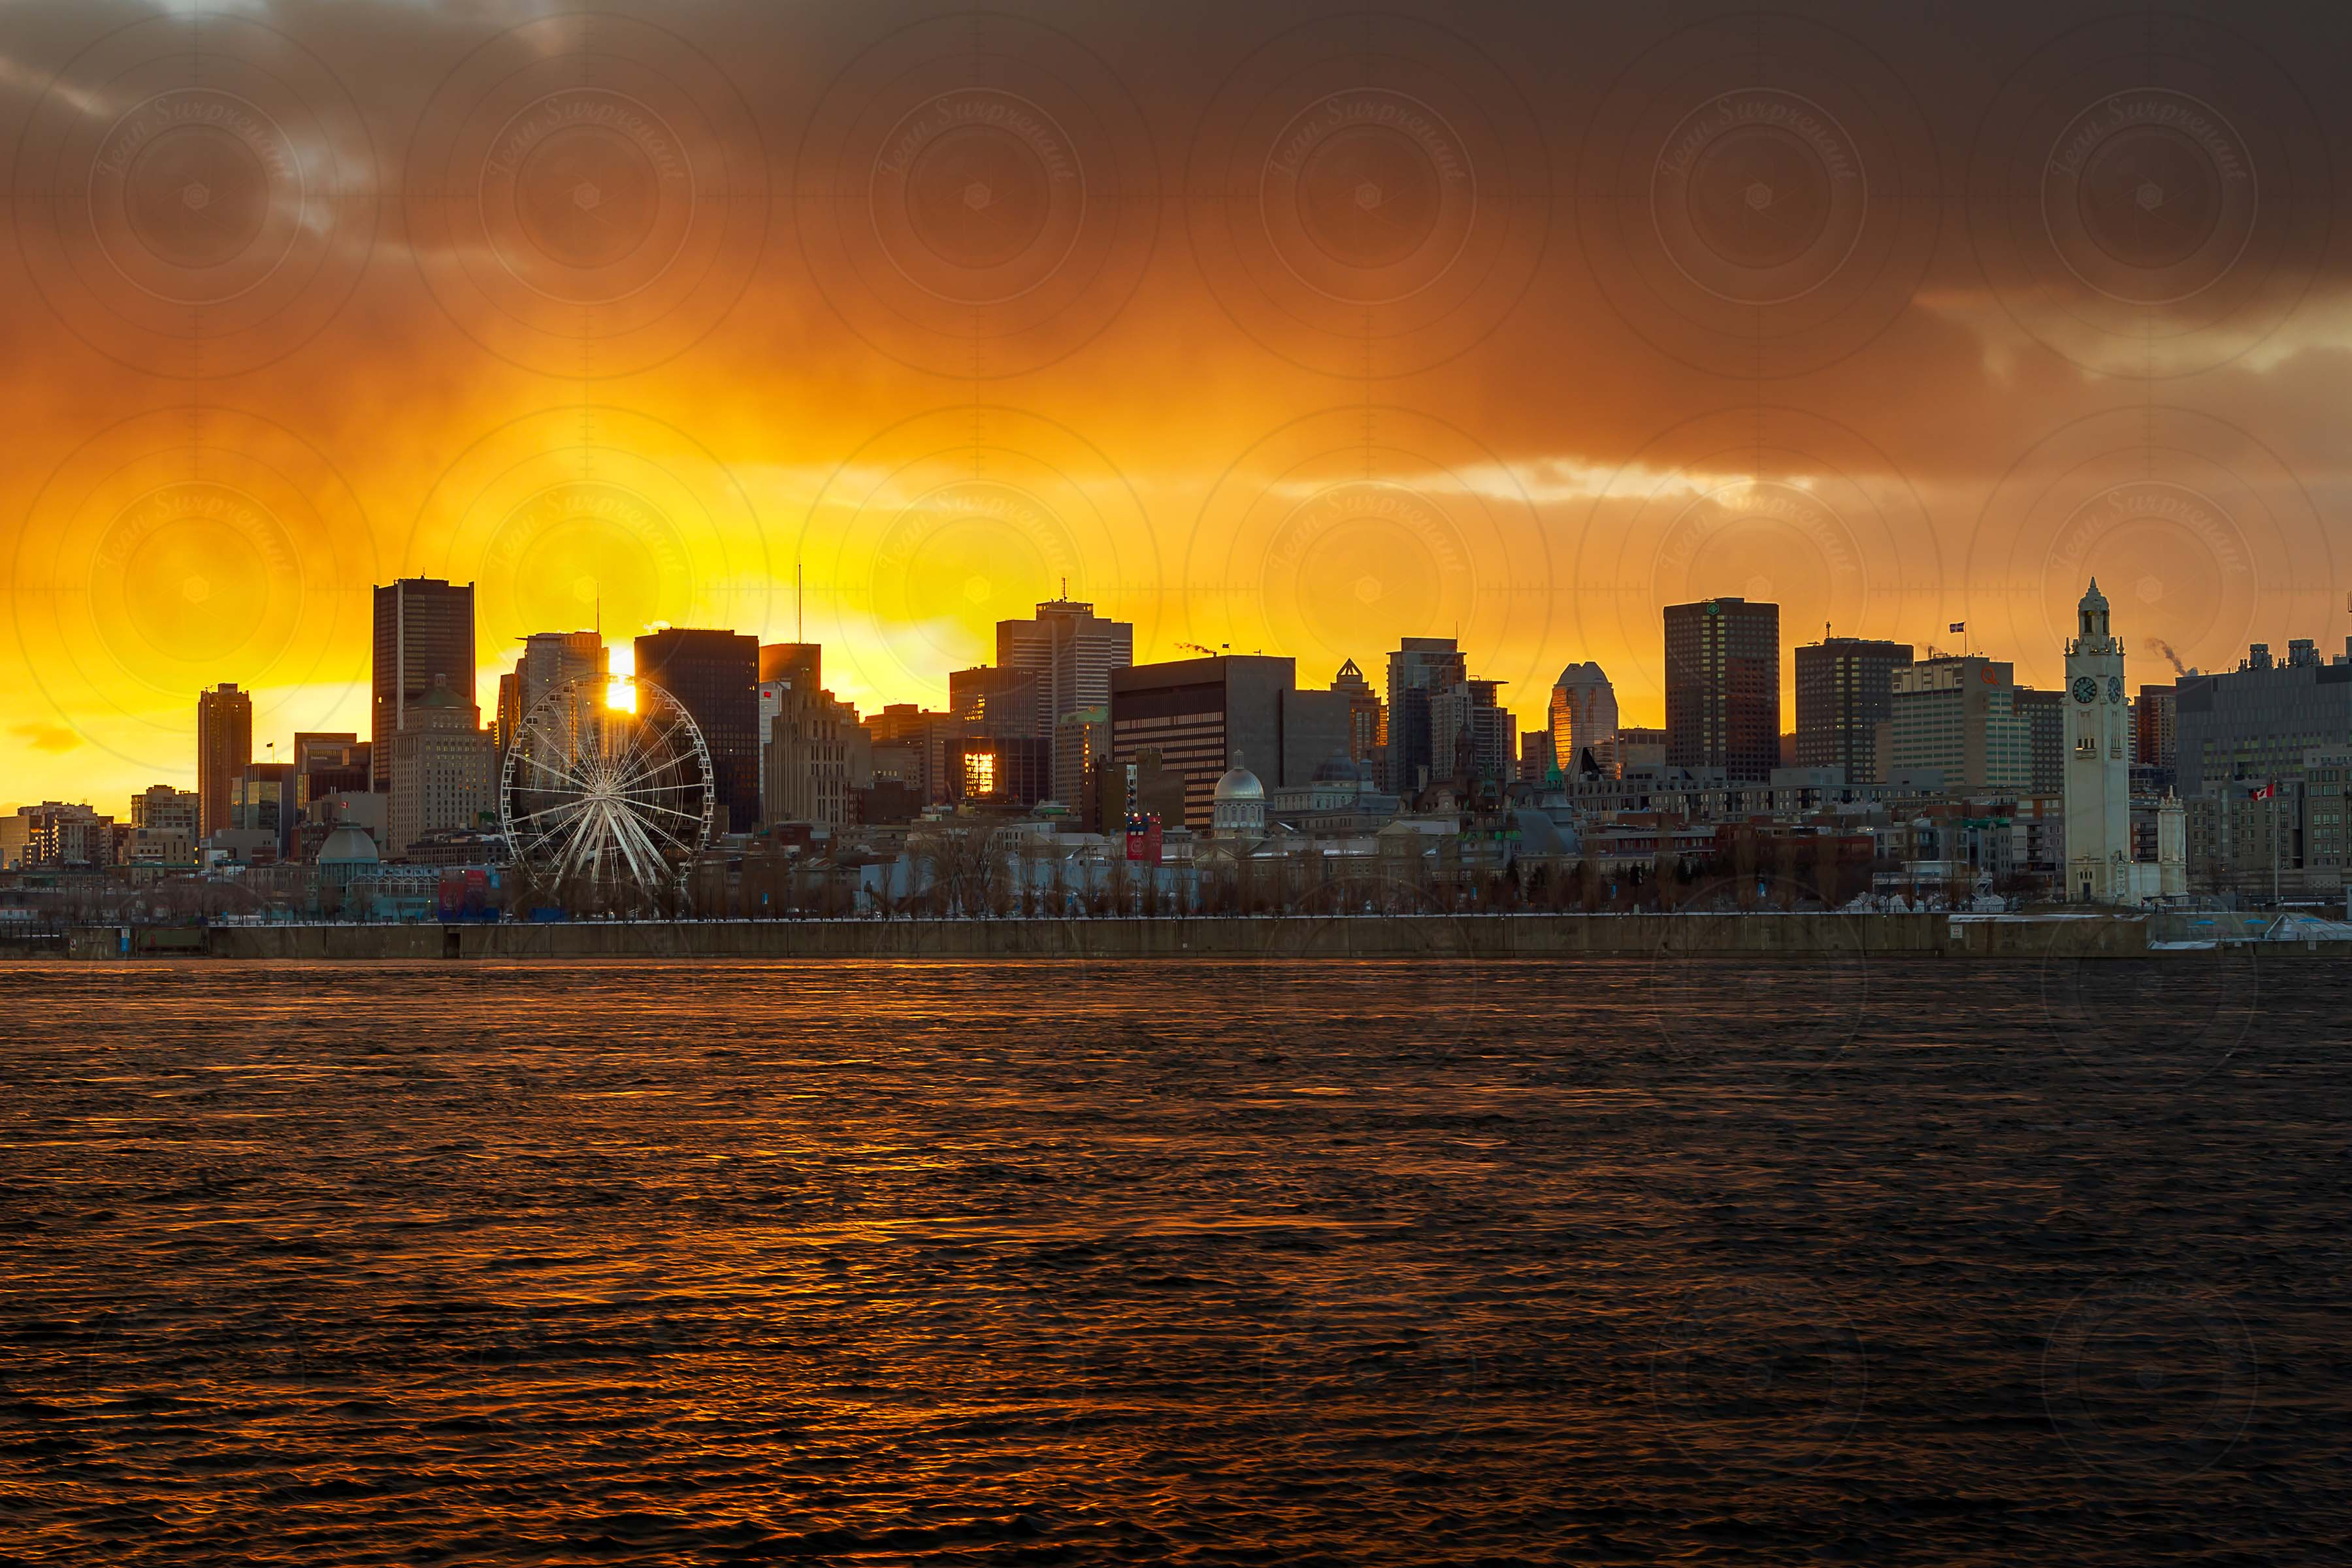 https://jeansurprenant.files.wordpress.com/2019/02/montreal-skyline-sunset.jpg